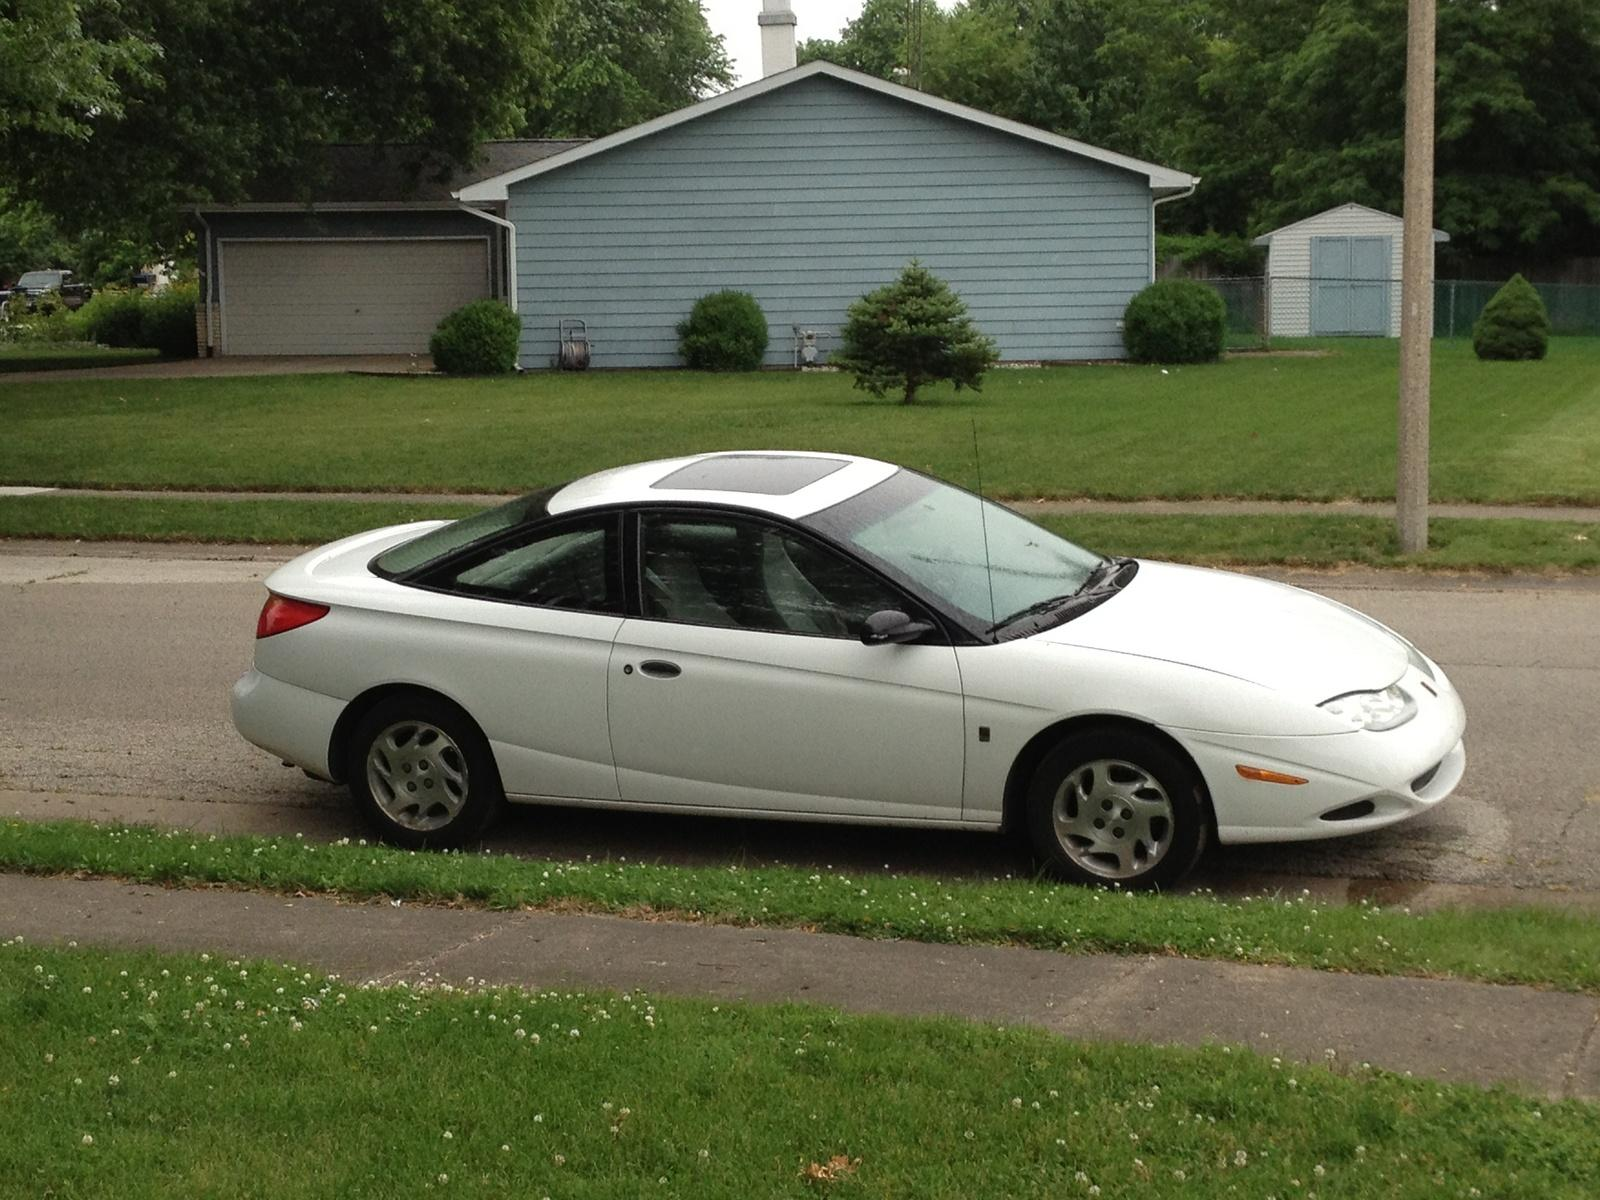 2000 Saturn S Series Information And Photos Zombiedrive L Wiring Diagrams 800 1024 1280 1600 Origin